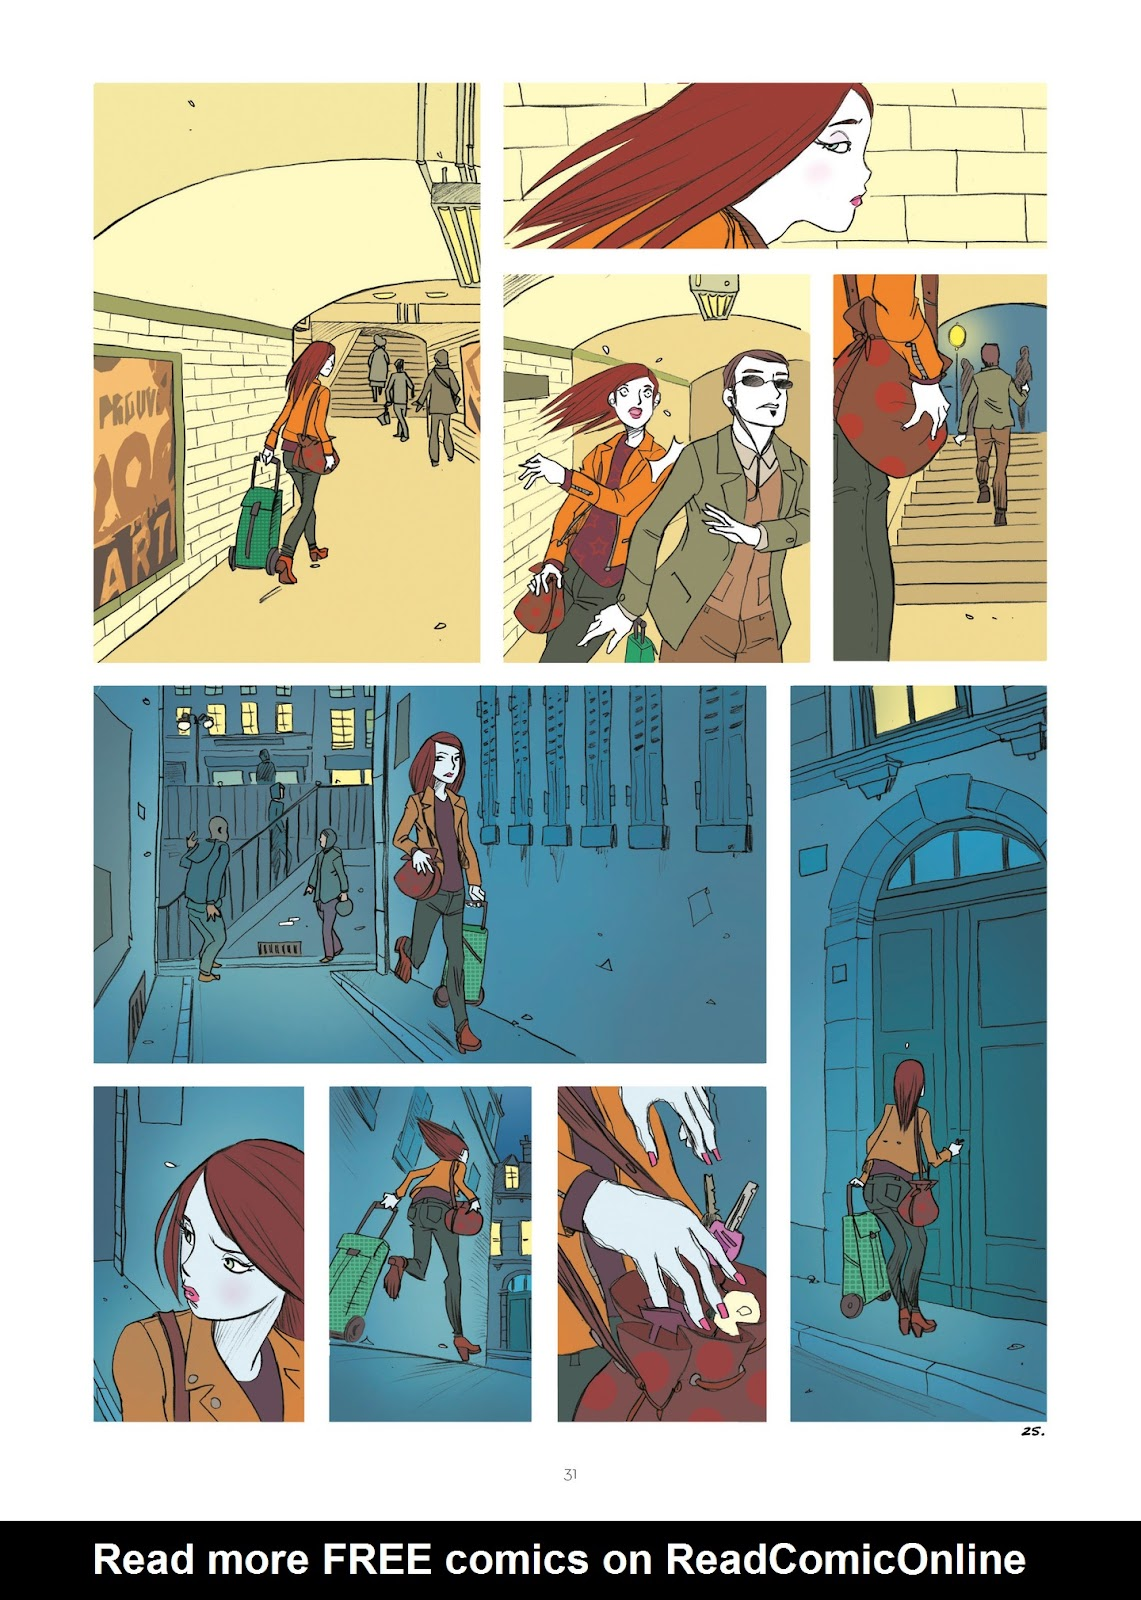 Read online Diary of A Femen comic -  Issue # TPB - 33